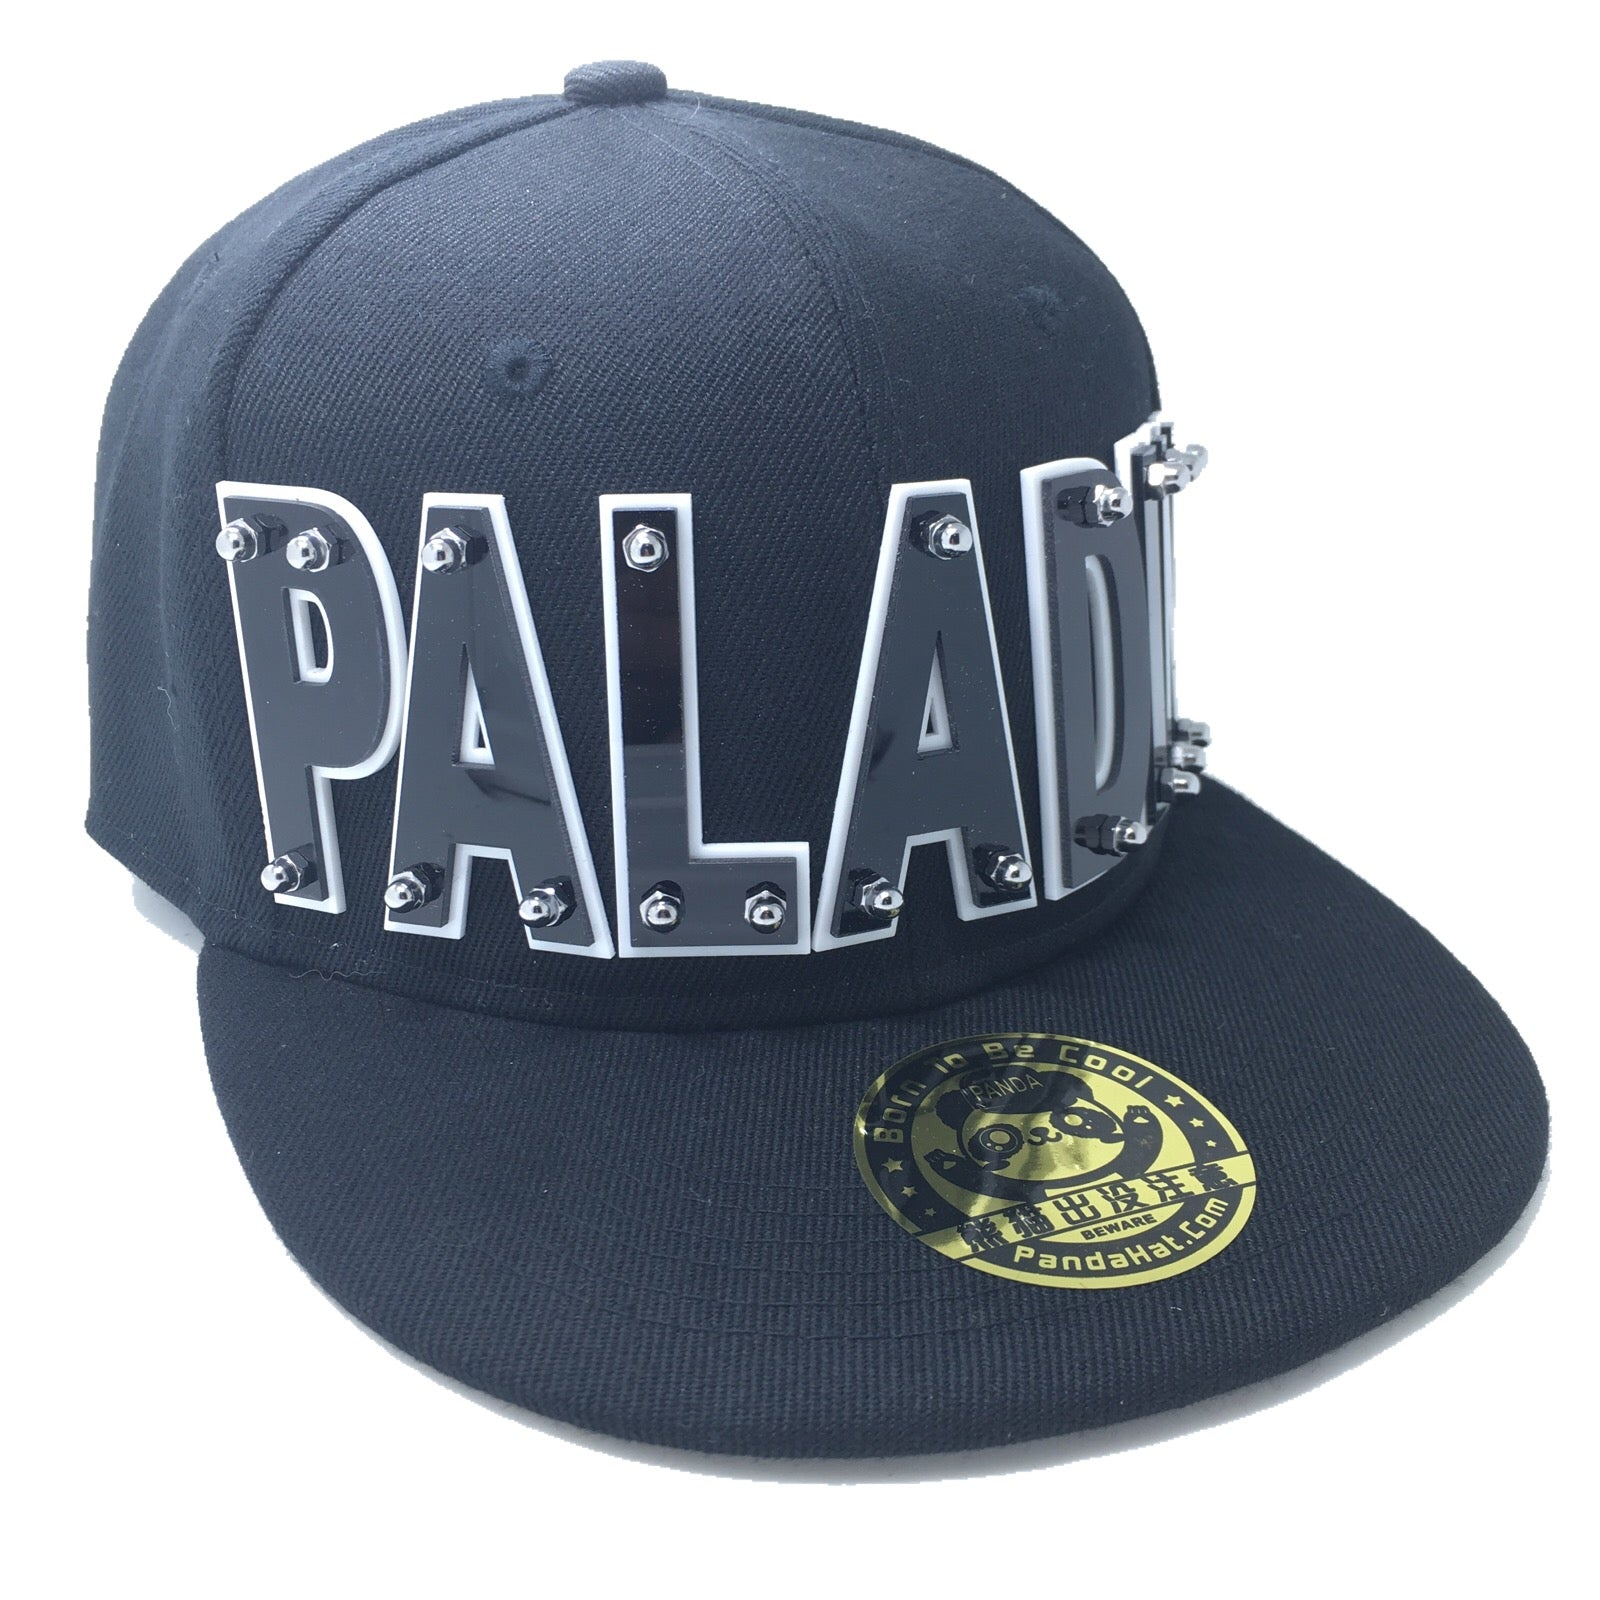 f528fbeb7 PALADIN VOLTRON HAT IN BLACK